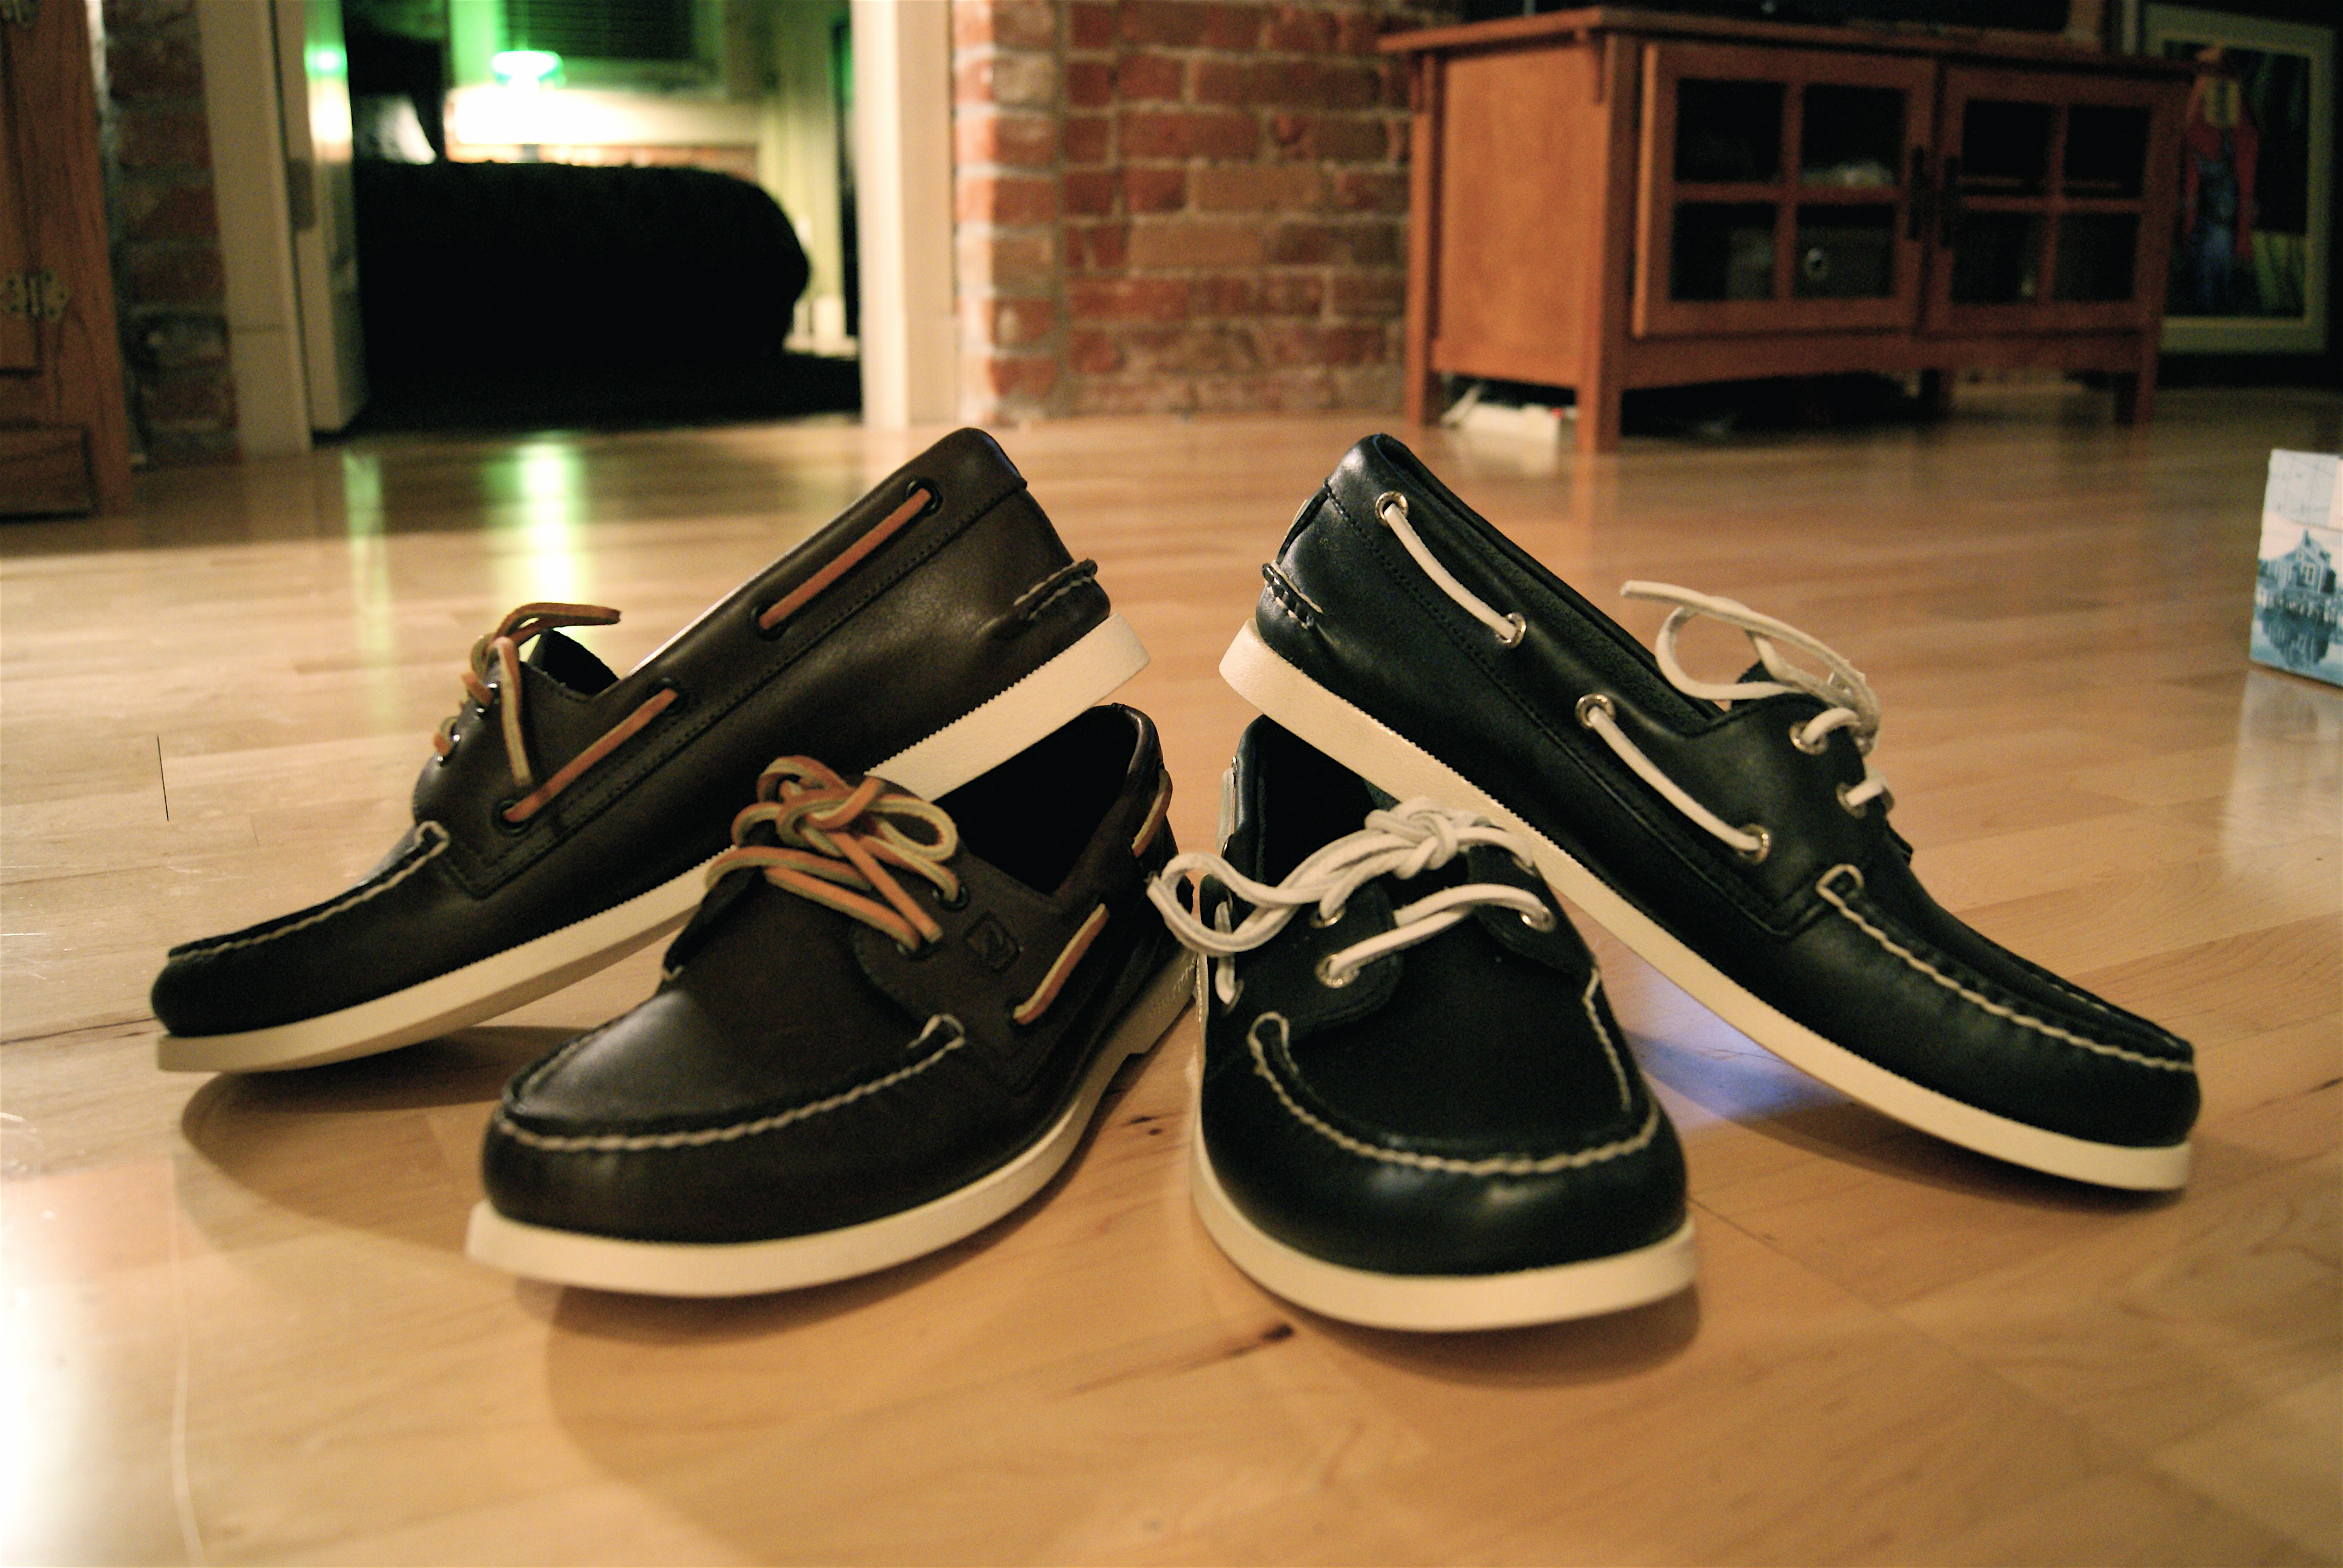 Top Sider Couple Shoes